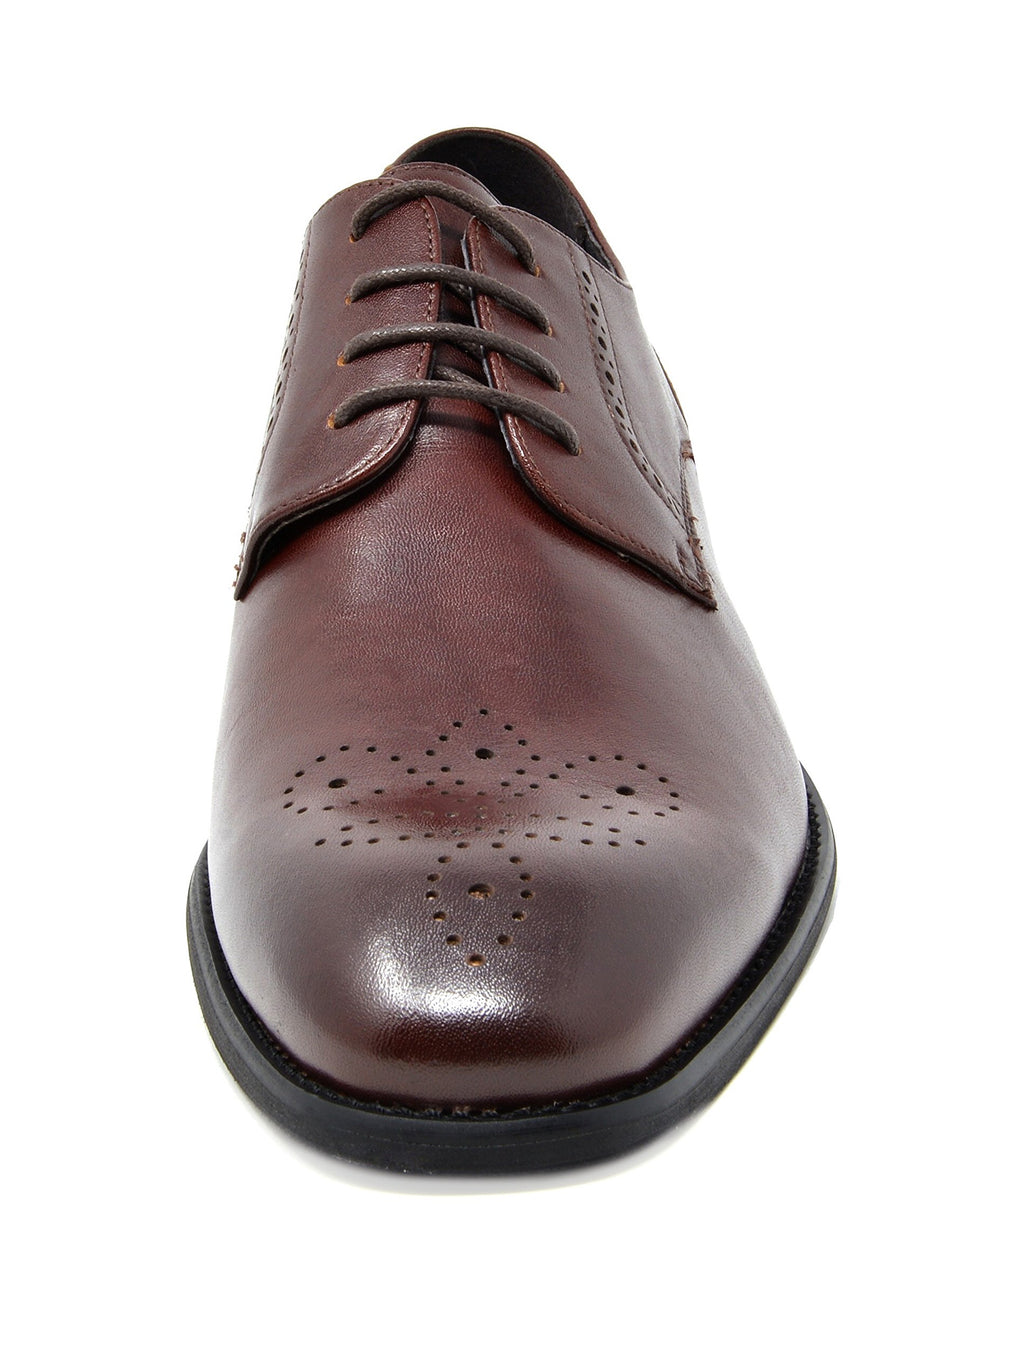 Men's Brown Dress Shoes Classic Oxfords Washington- Dark Brown